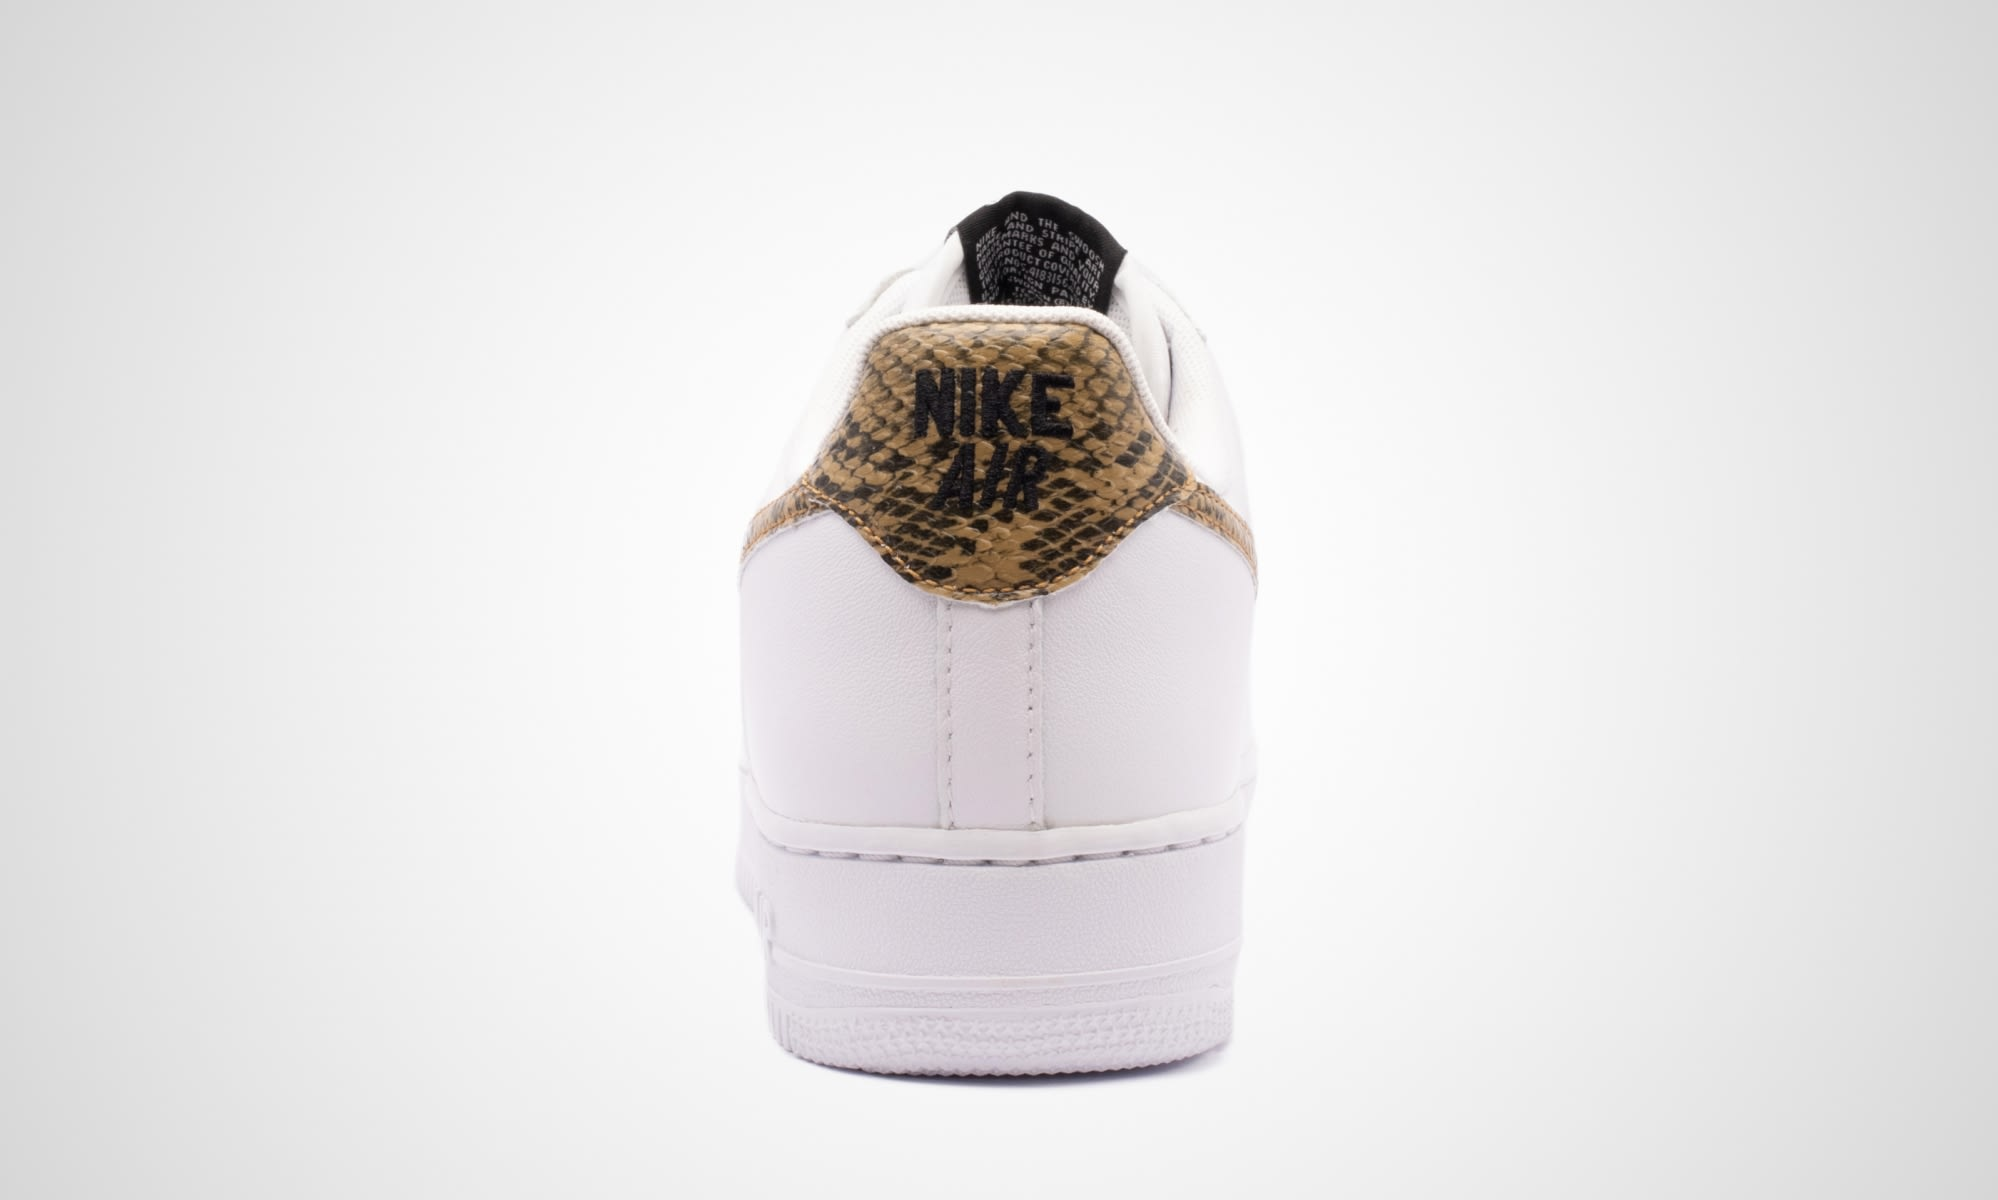 Nike Air Force 1 Low 'Ivory Snake' AO1635-100 (Heel)